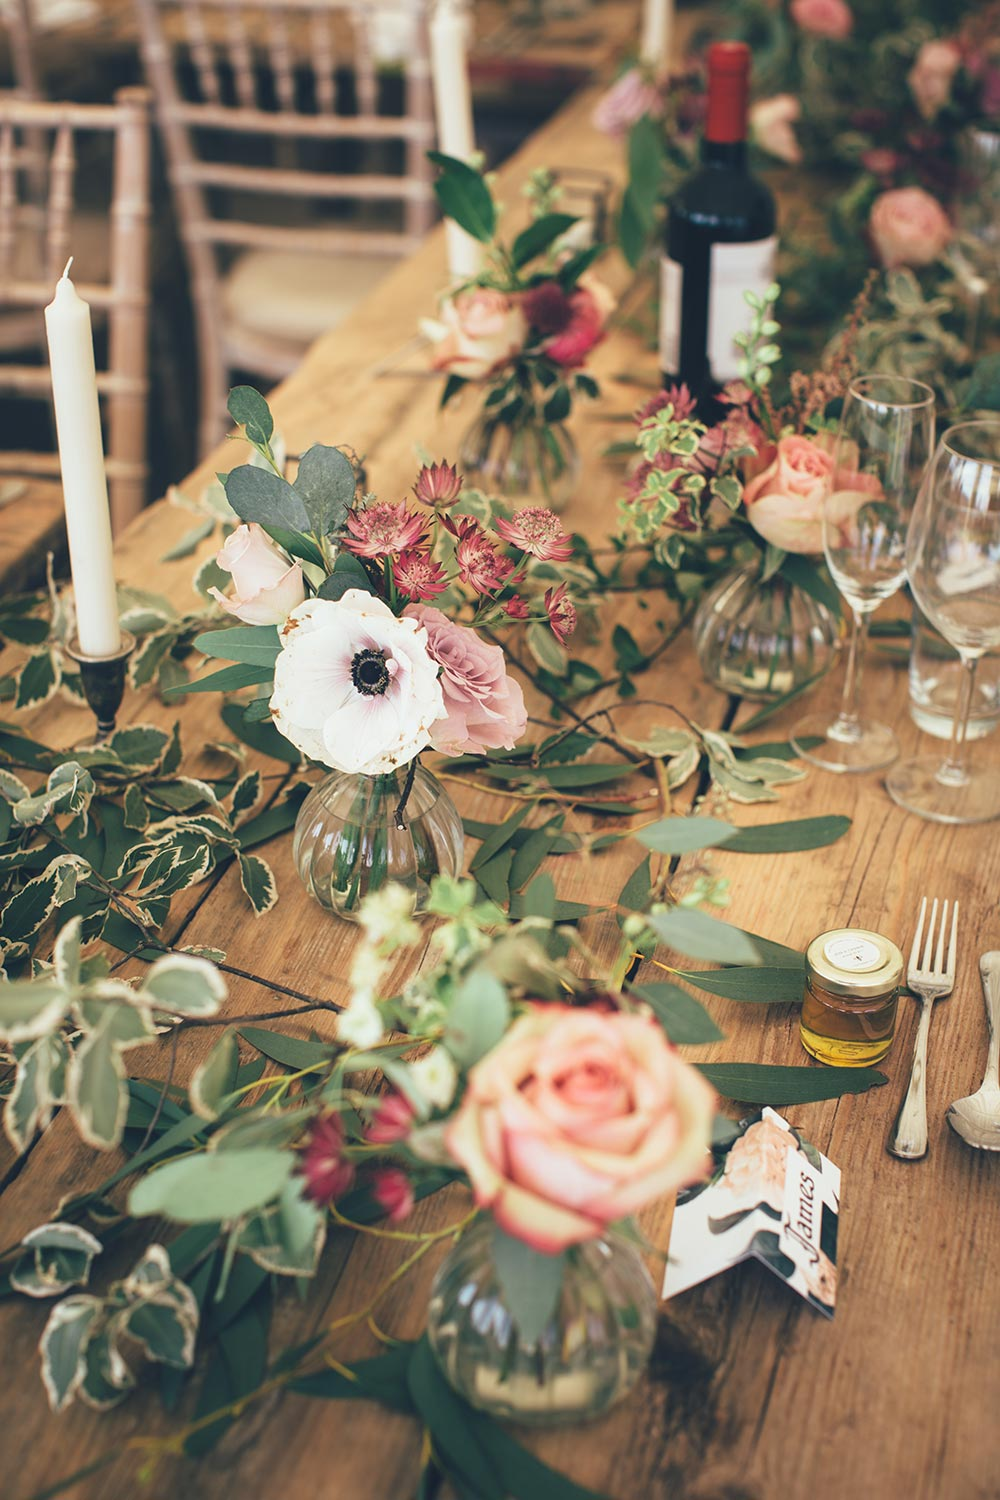 4-wilde-thyme-wedding-flowers-rustic-wedding-tables-decor.jpg